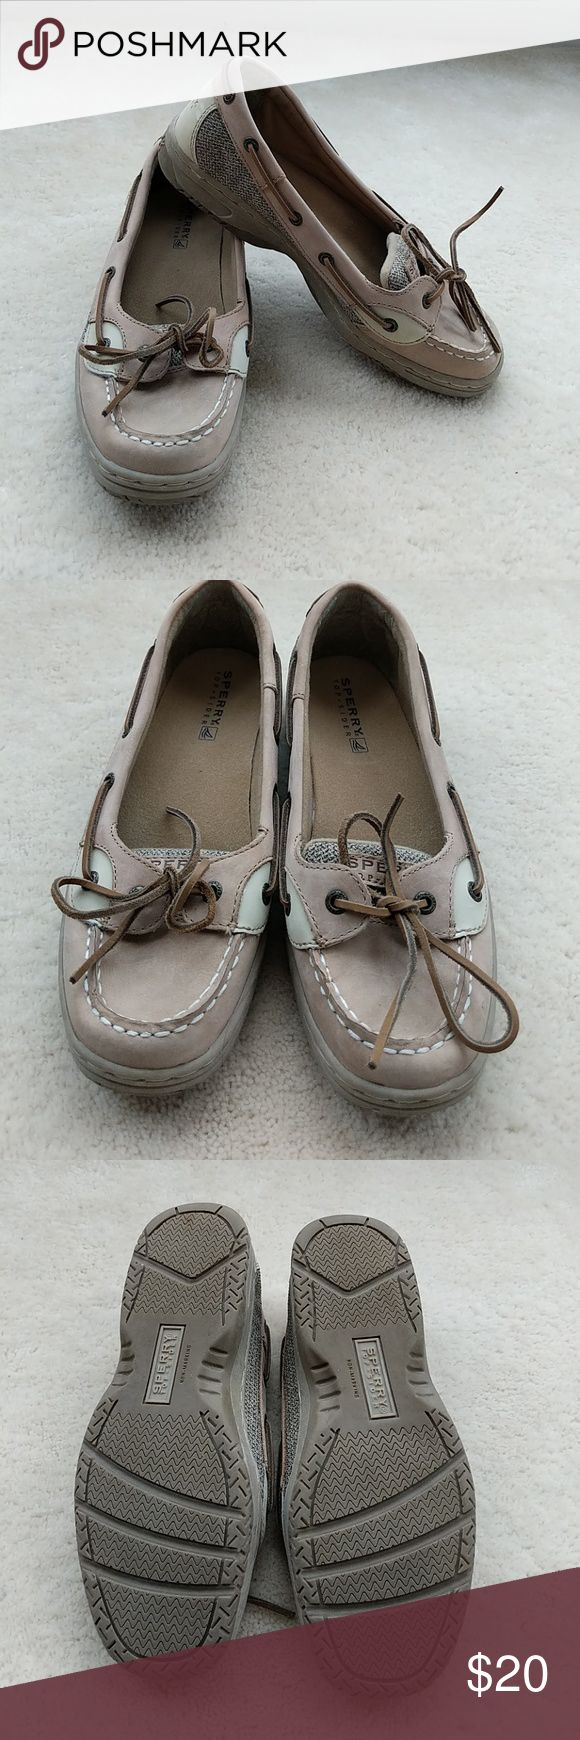 Sperry top-sider angelfish Like new! Perfect neutral shoe! Sperry top-sider angelfish. Worn maybe twice? Leather uppers. Nice sole. No signs of wear just too narrow for me, I wasn't meant to wear Sperry's :( Sperry Top-Sider Shoes Flats & Loafers